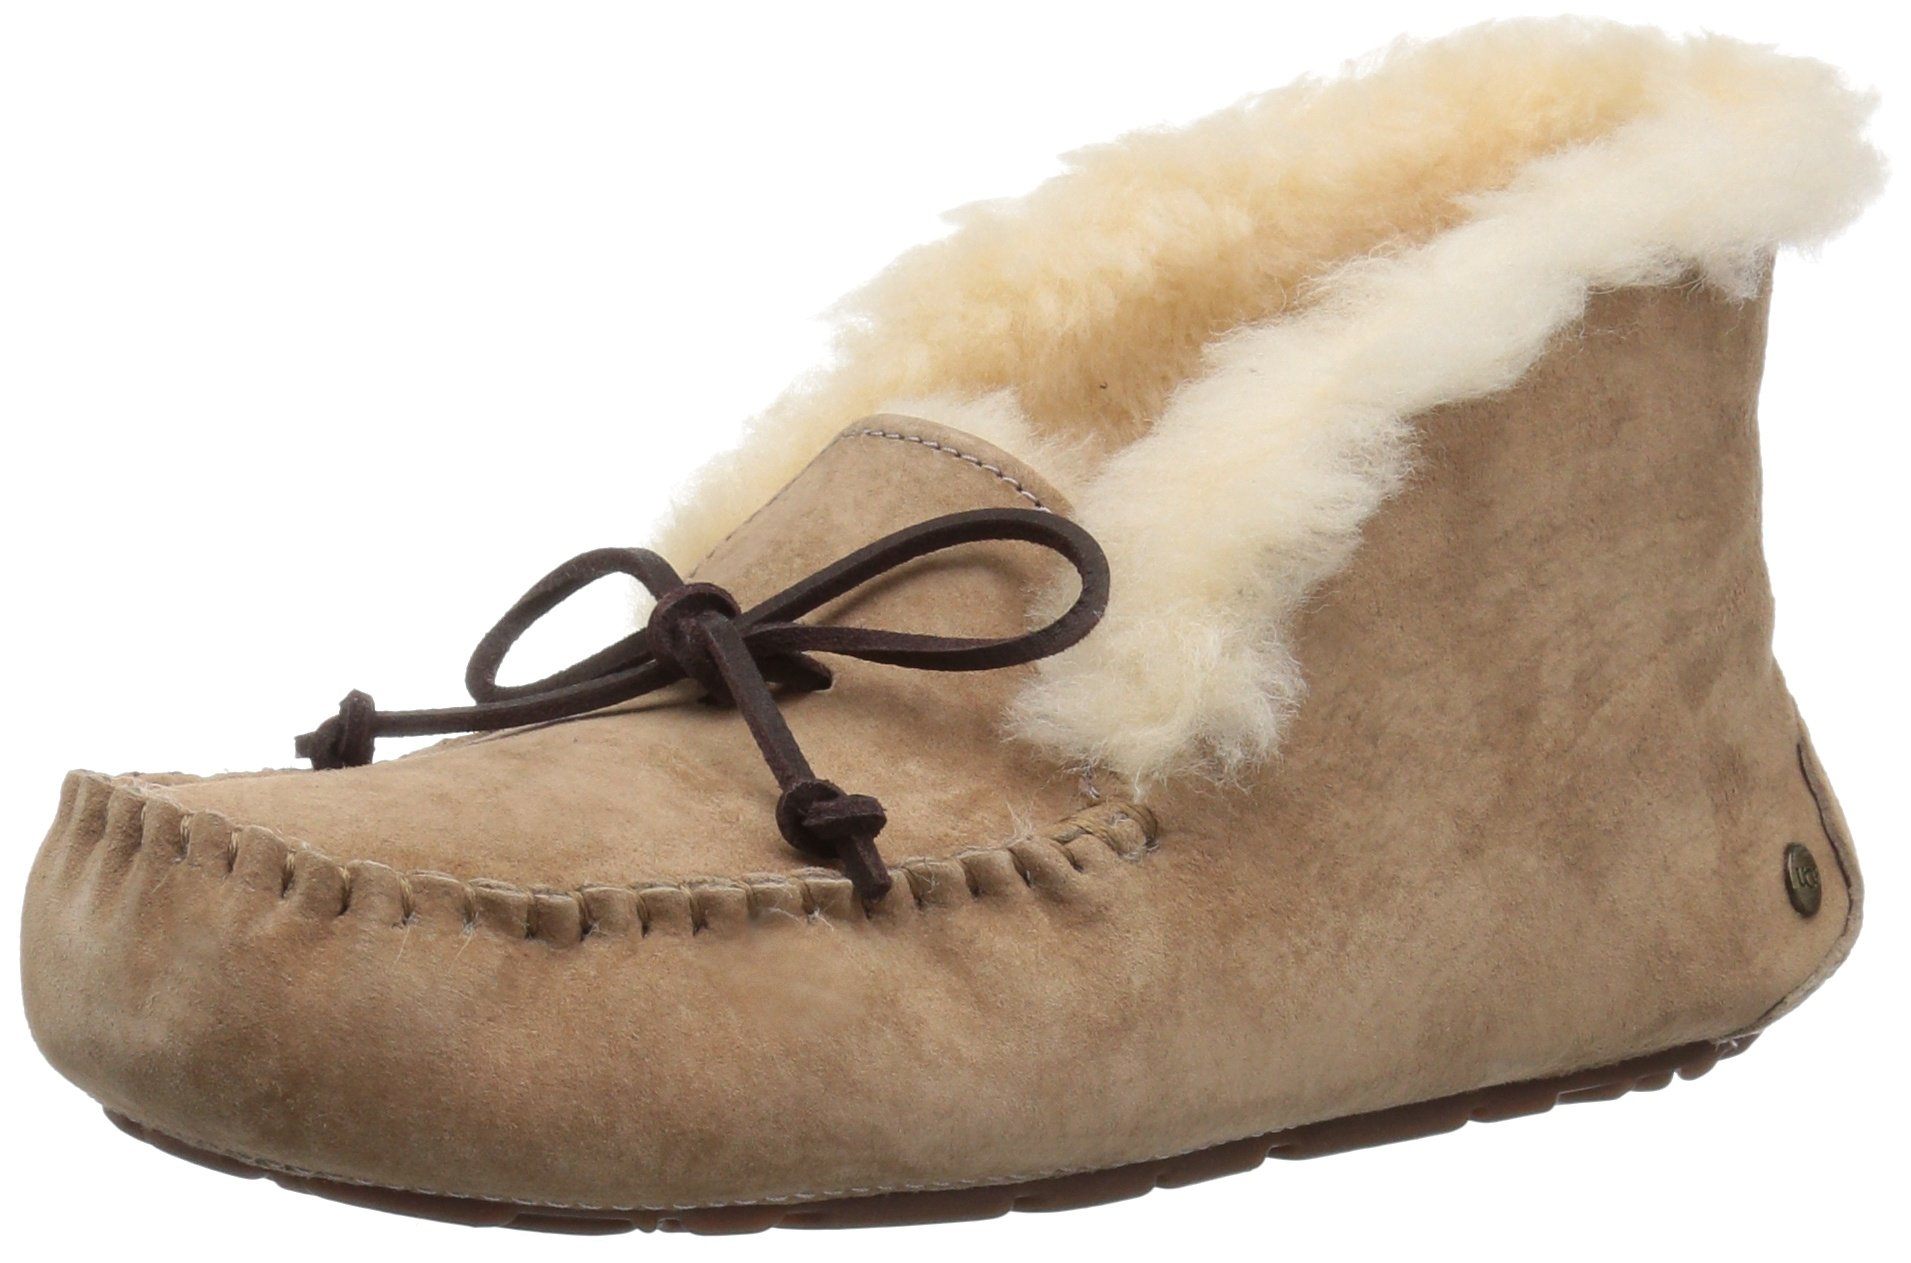 UGG Women's Alena Moccasin, Fawn, 6 M US